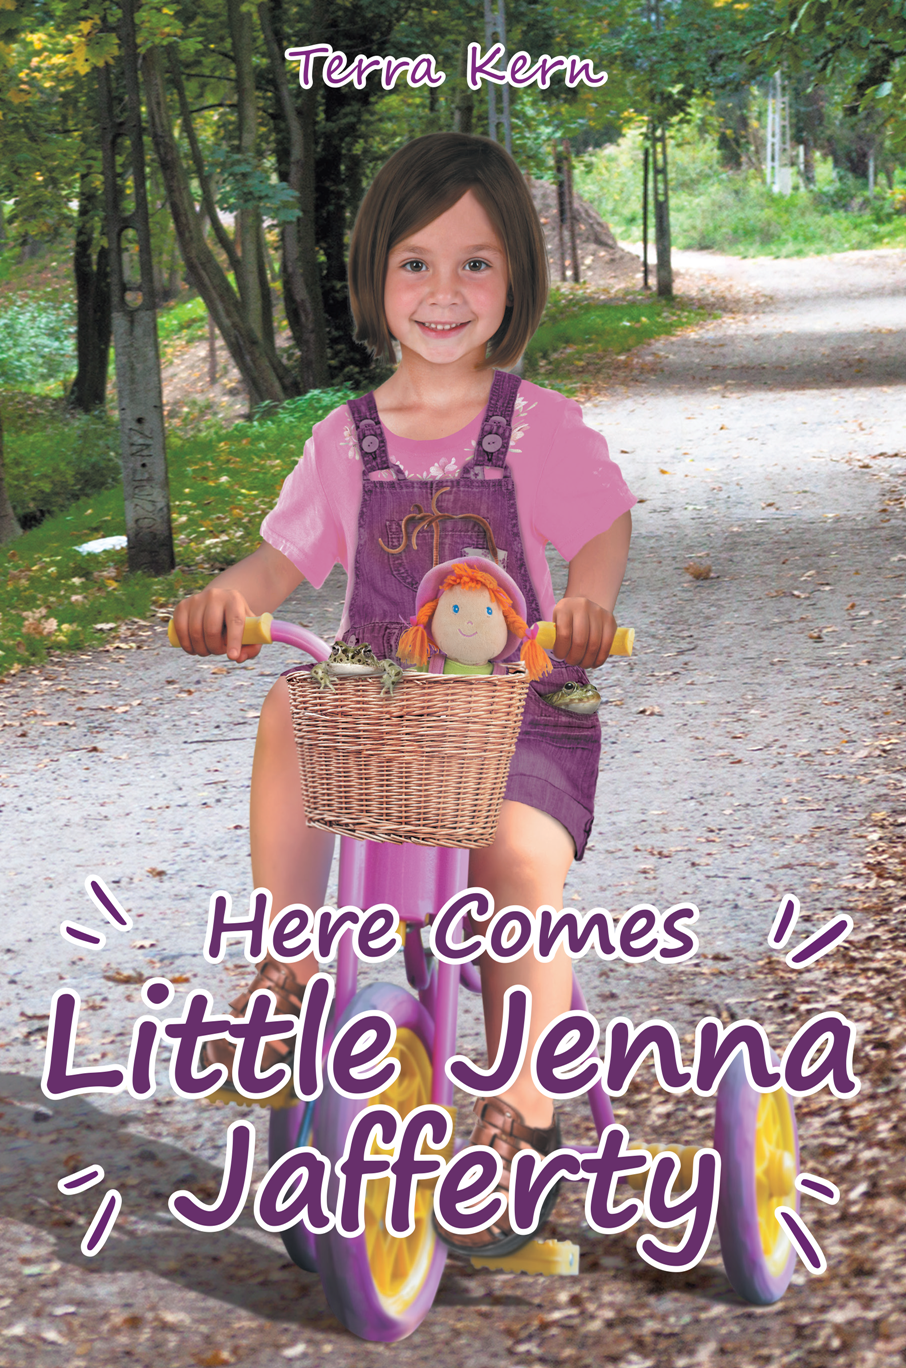 Book 1 in The Little Jenna Jafferty Series